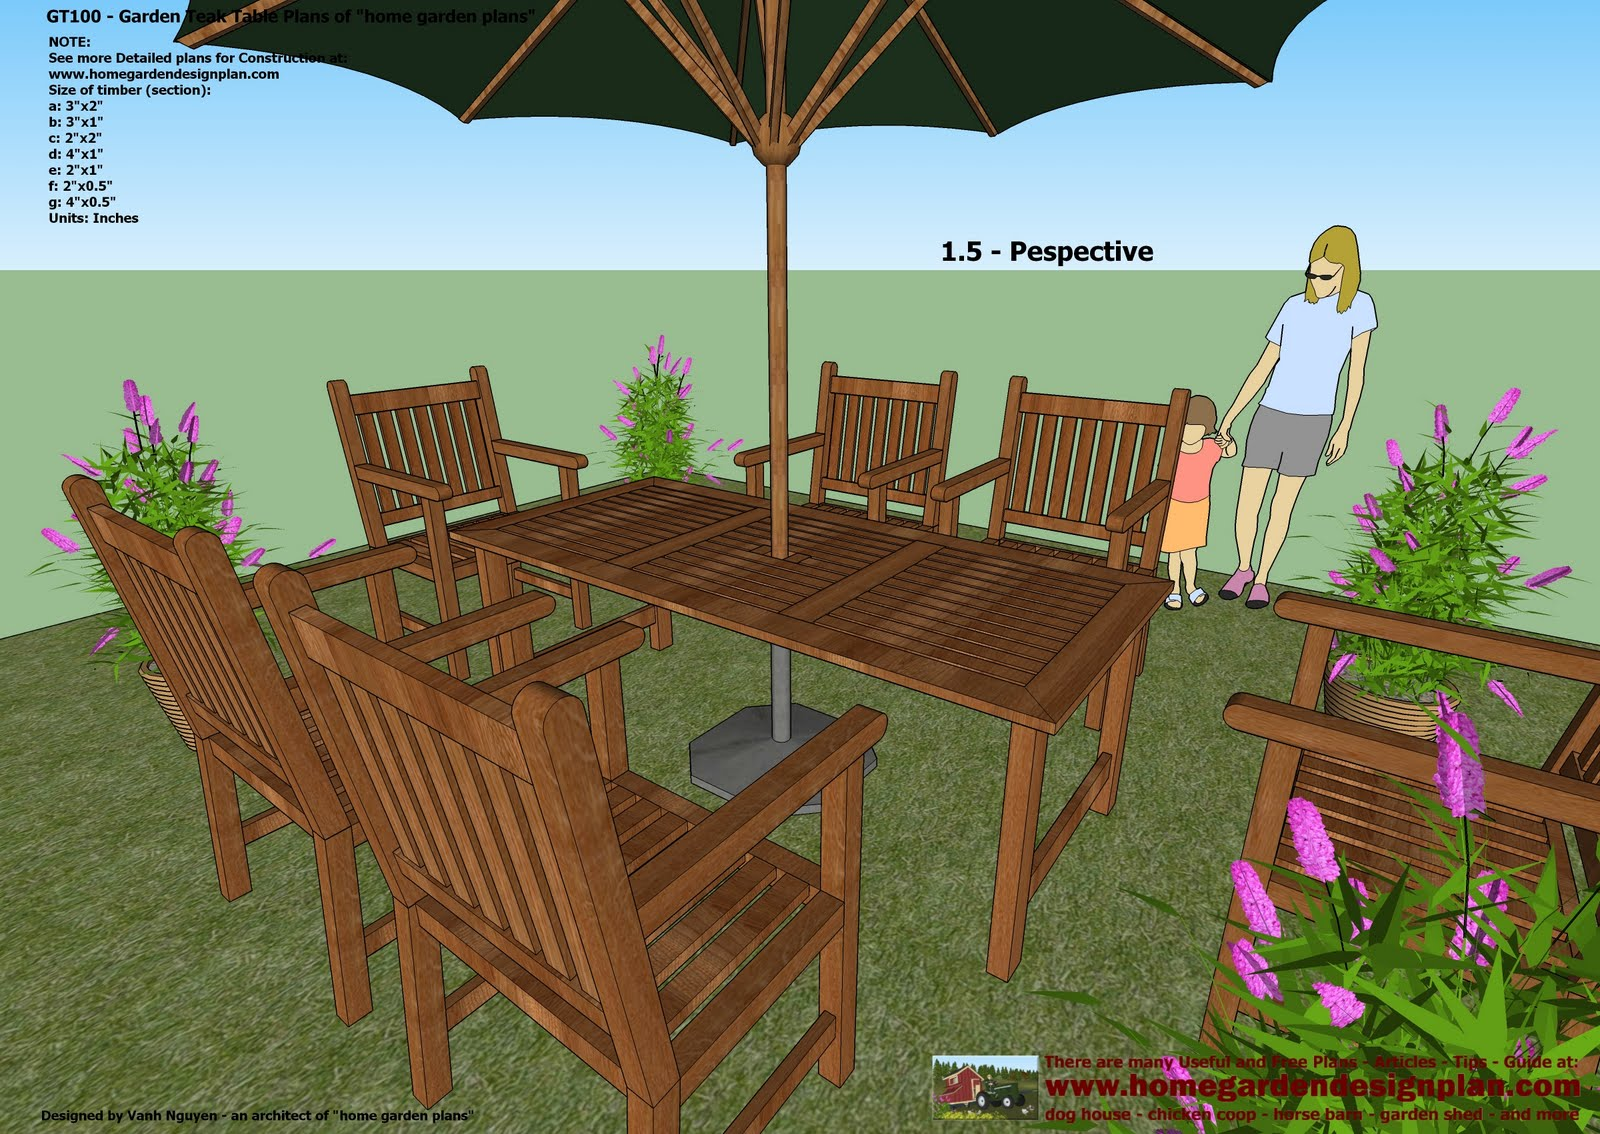 garden+teak+table+woodworking+plans+-+outdoor+furniture+plans+free ...